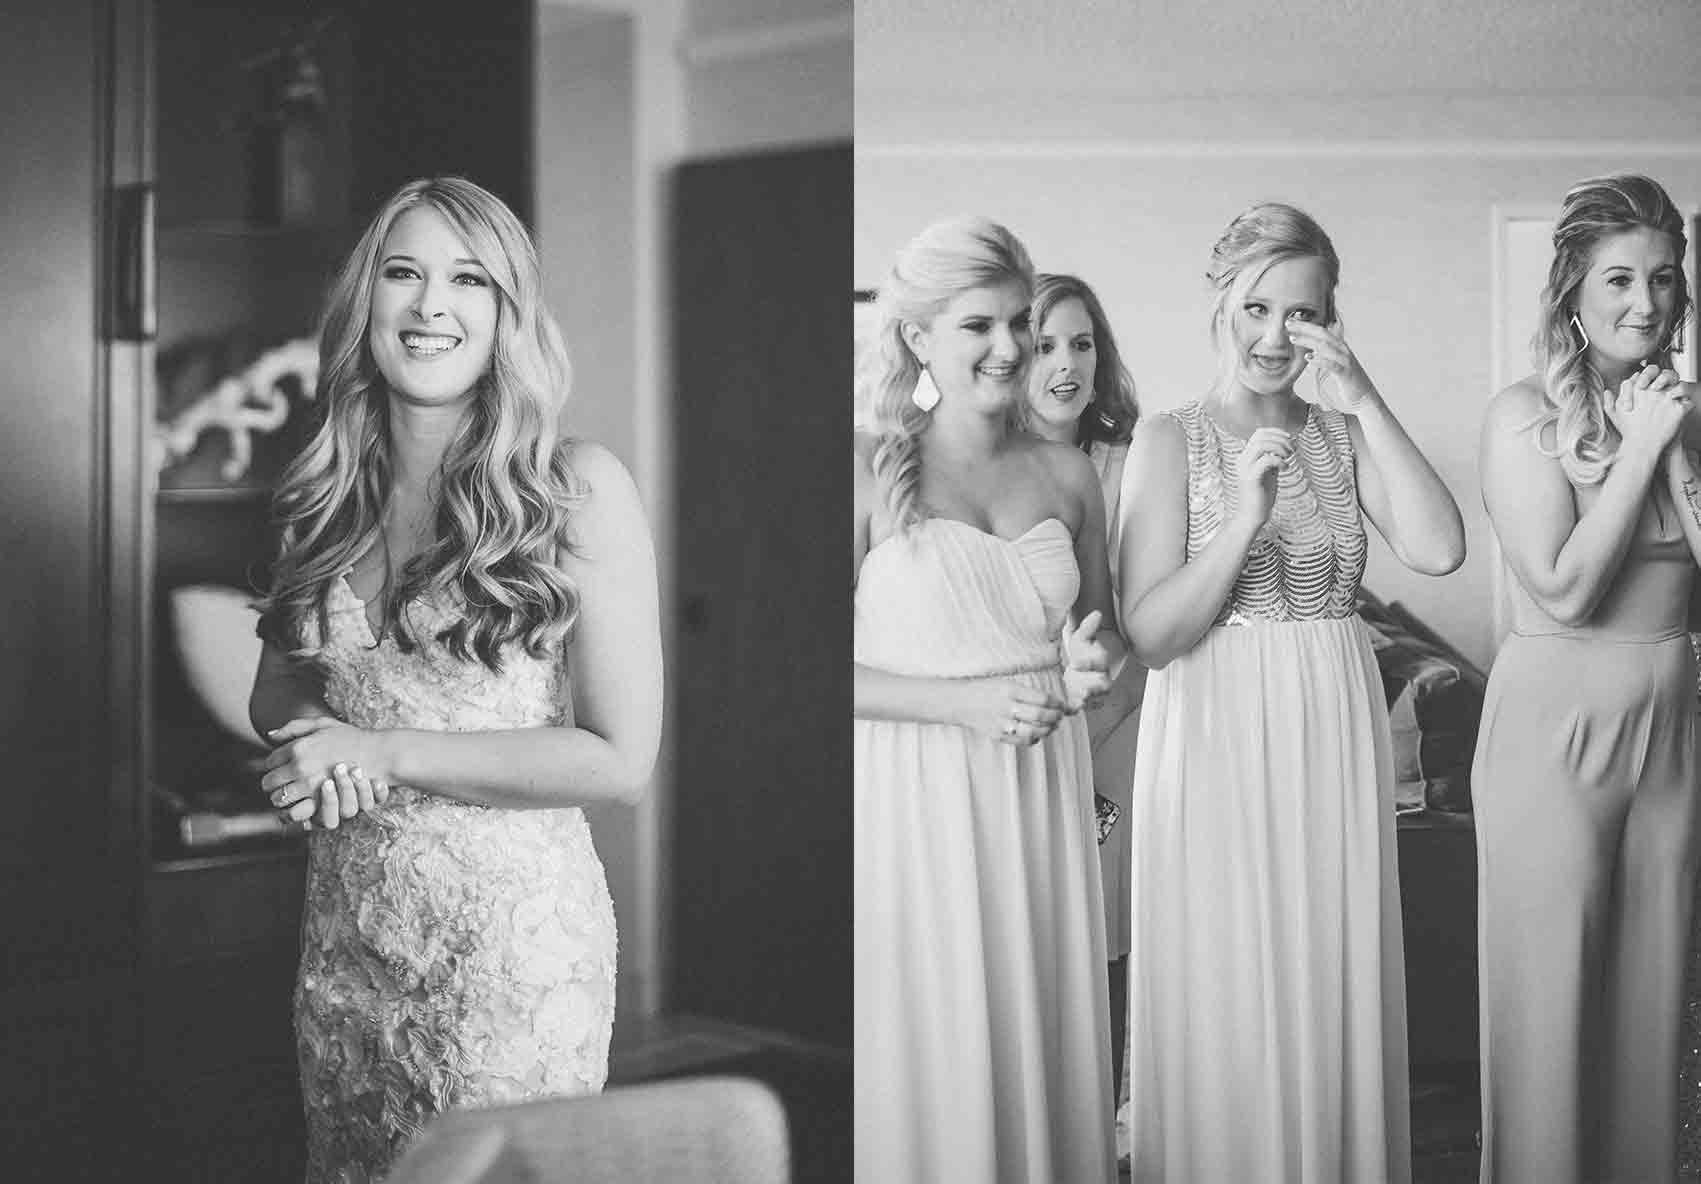 fashion-blogger-cameron-proffitt-has-romantic-dallas-rooftop-wedding-with-mixed-bridesmaids-dresses-and-neutral-color-palette-3